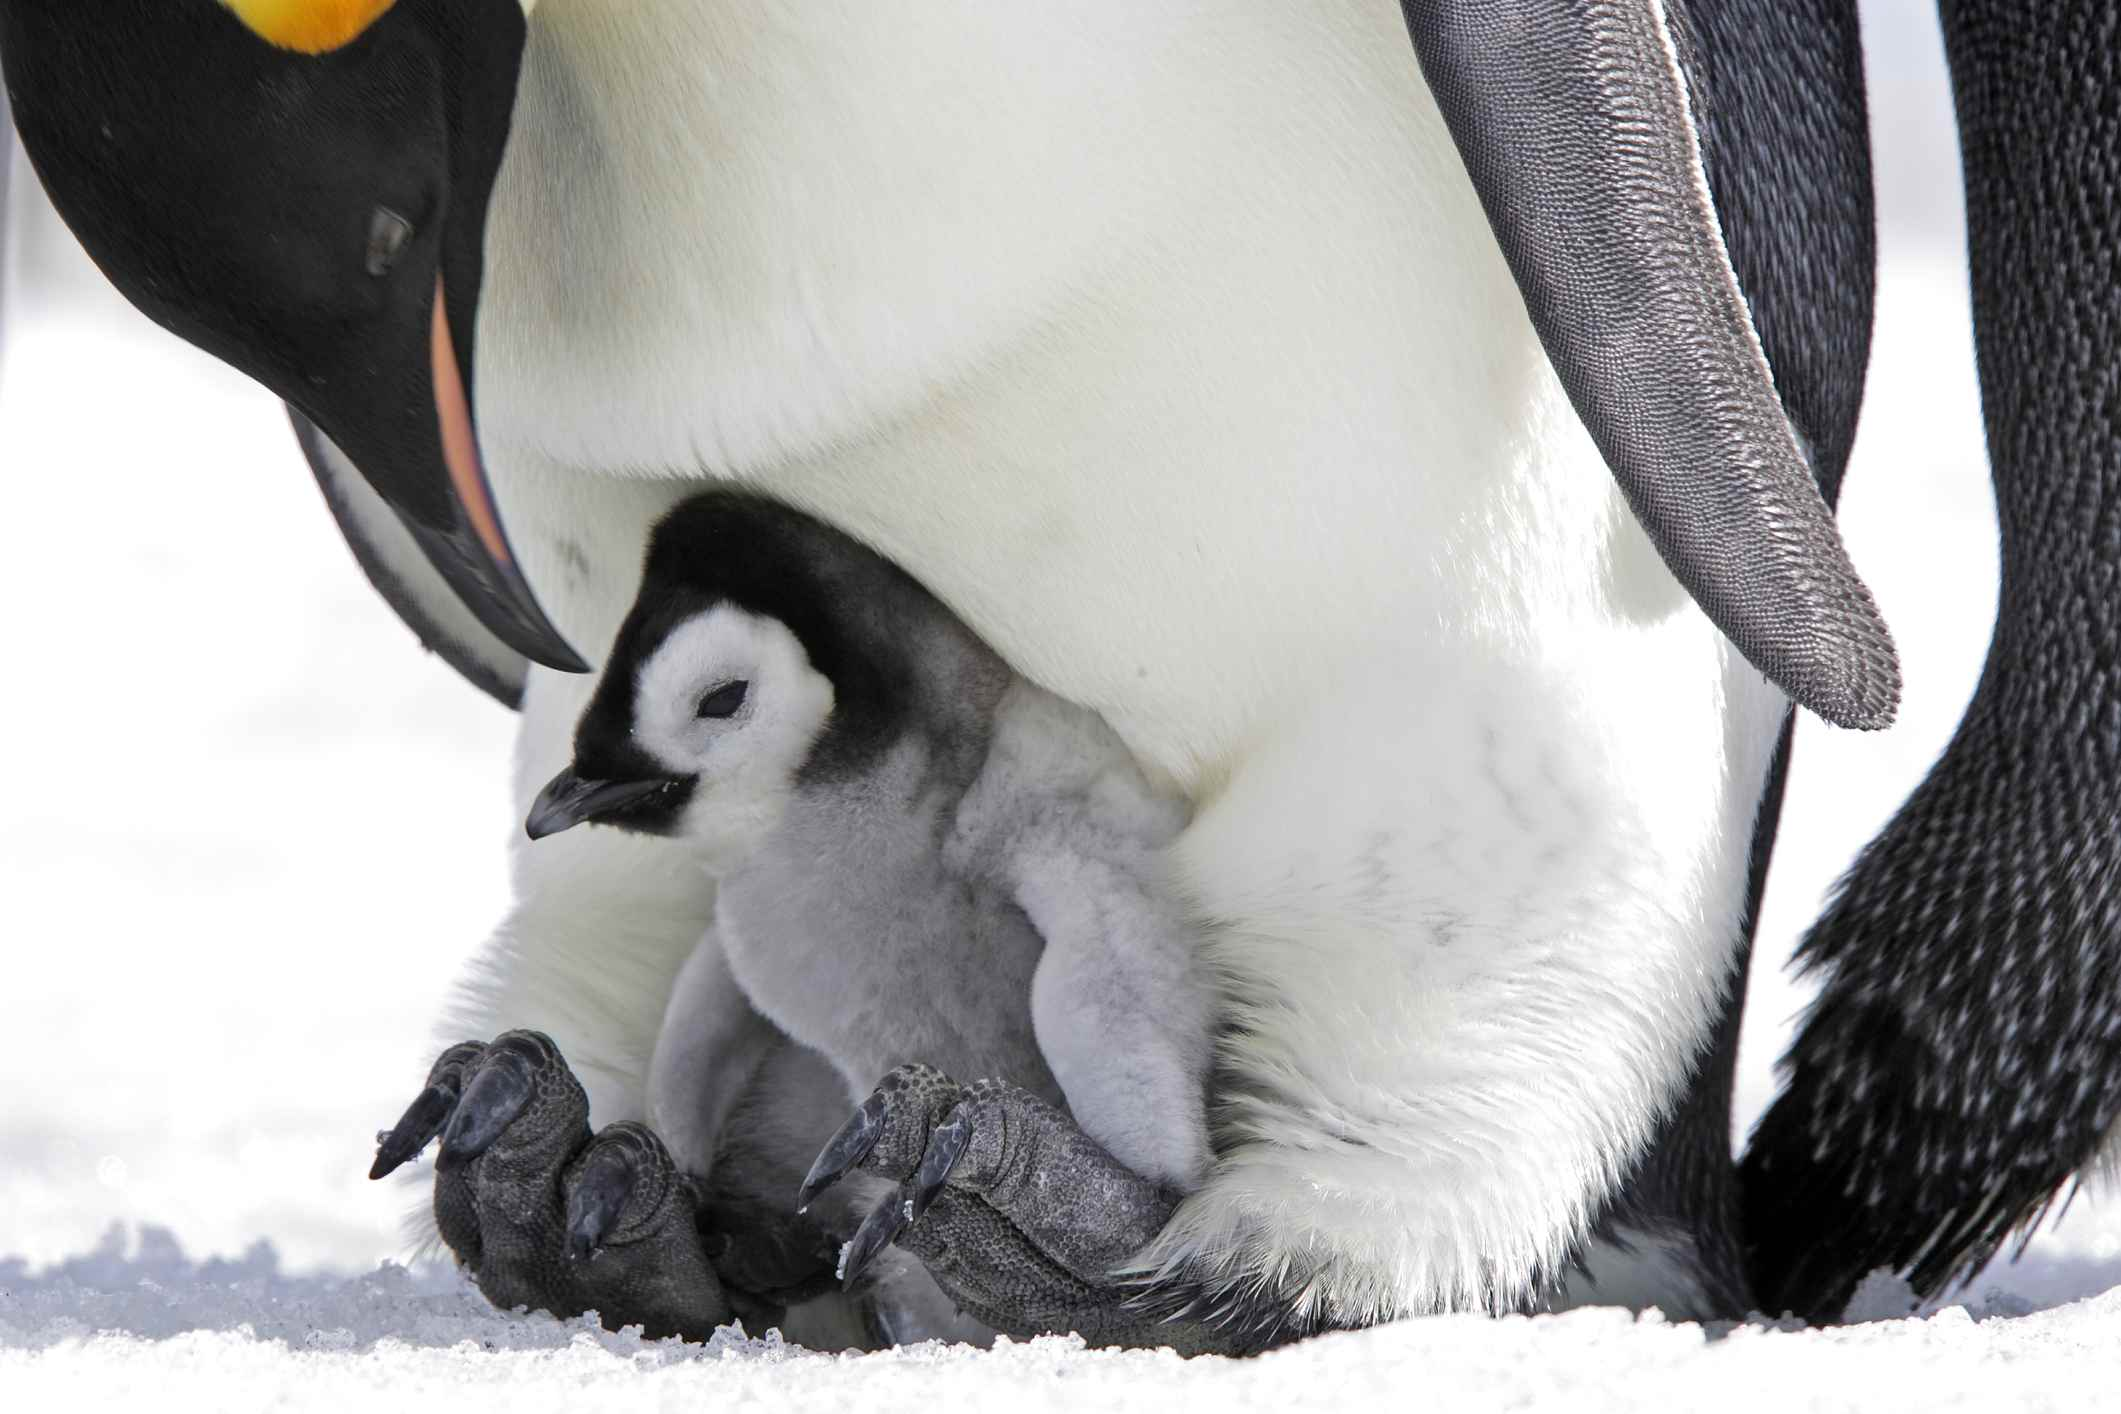 Males keep chicks warm by resting them on their feet and snuggling them in an area of feathers called the